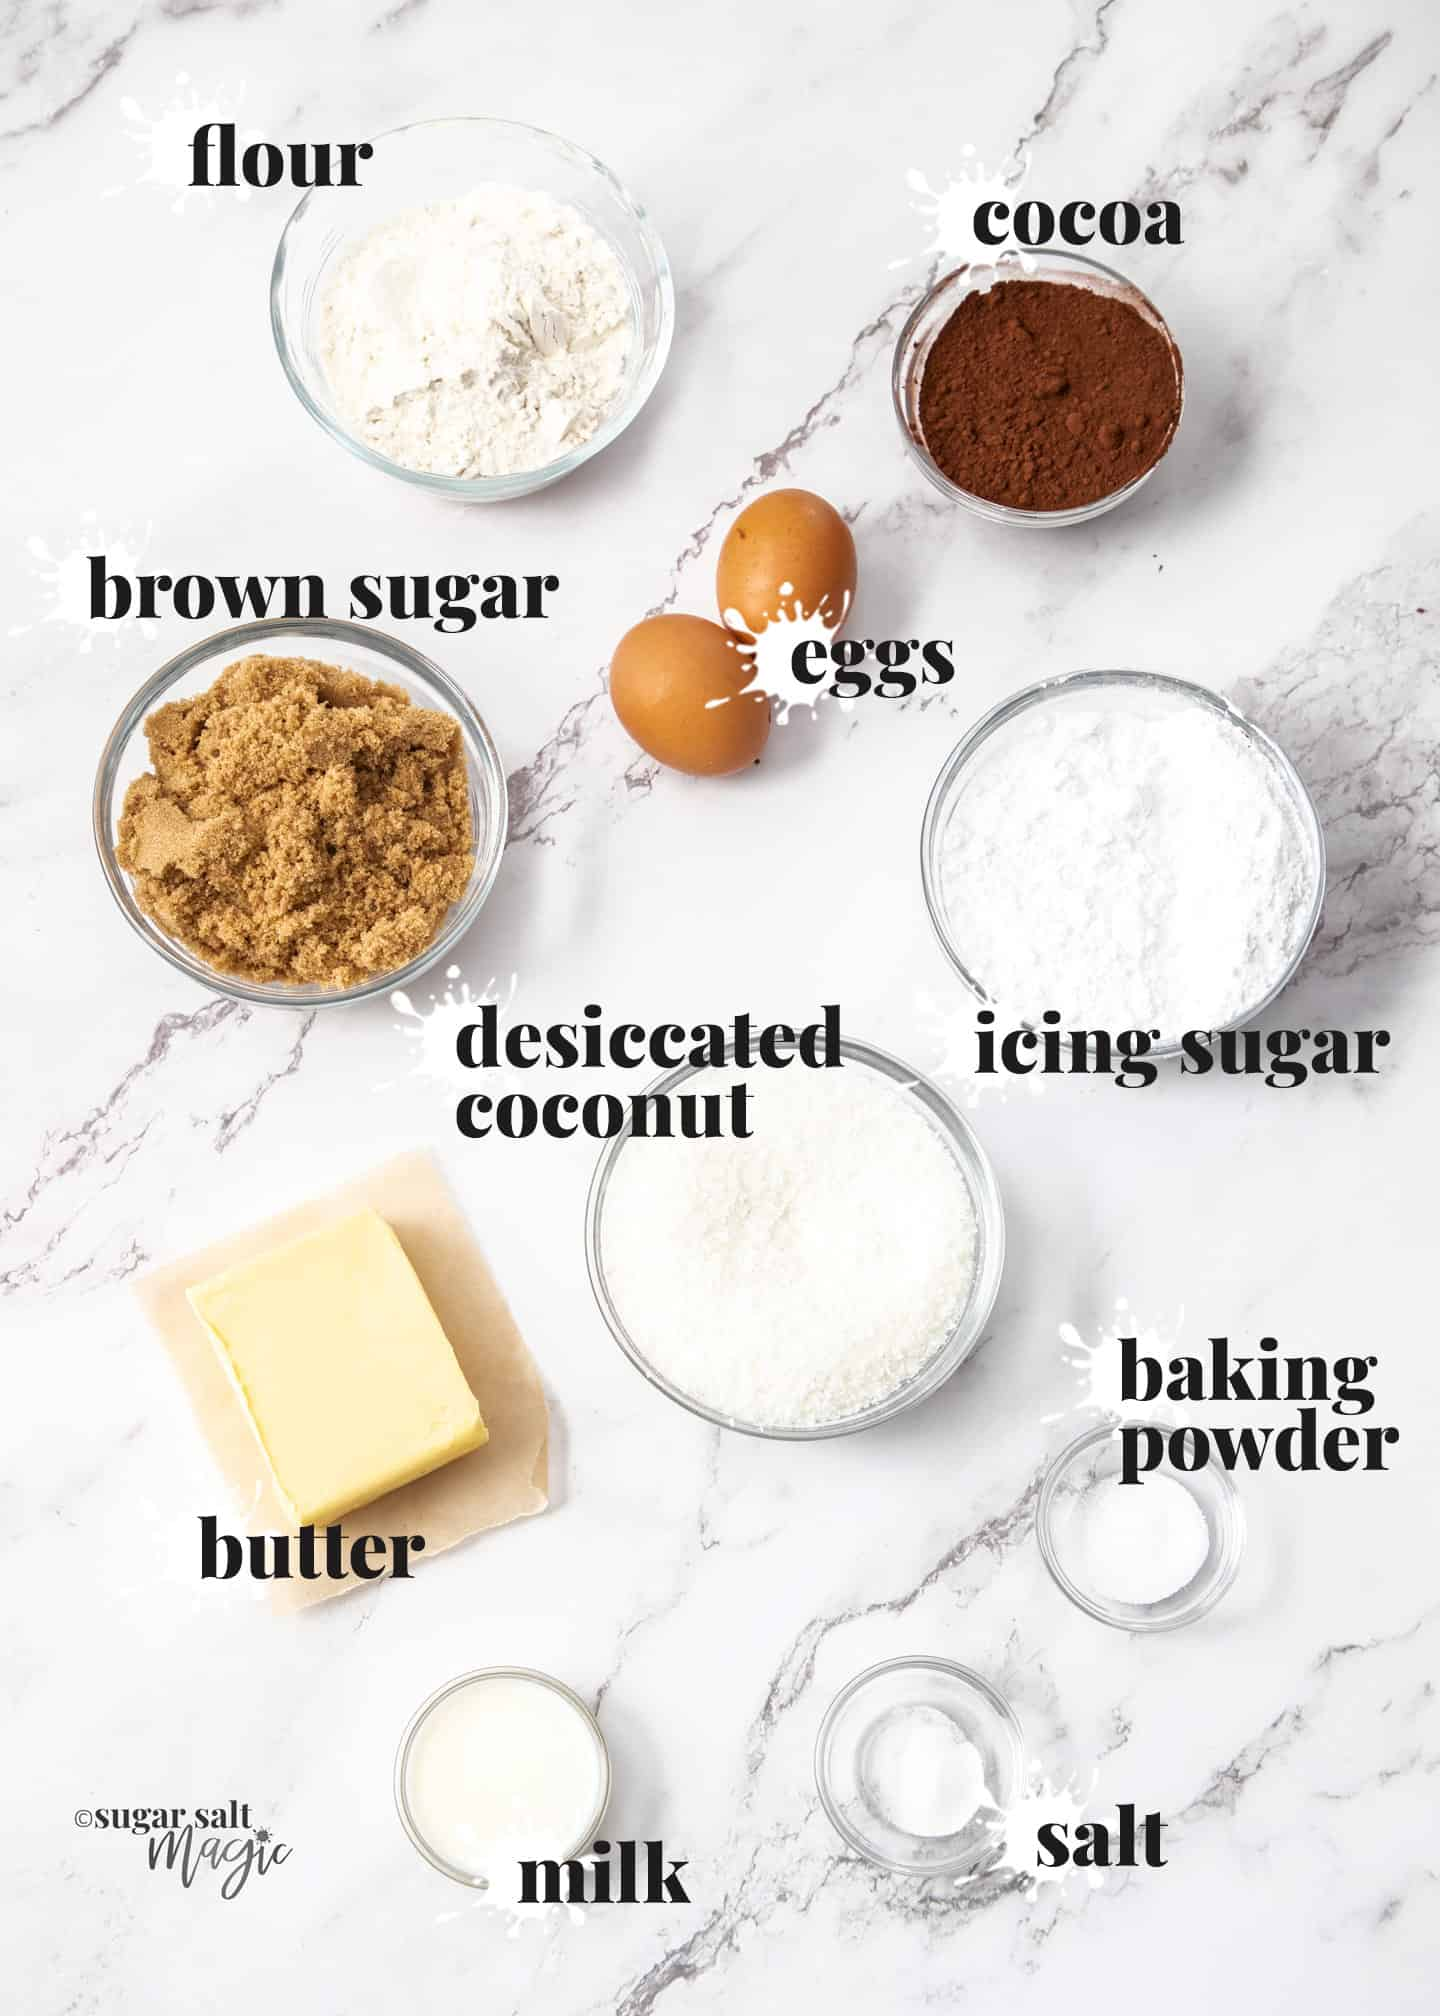 Ingredients for chocolate coconut slice on a marble surface.